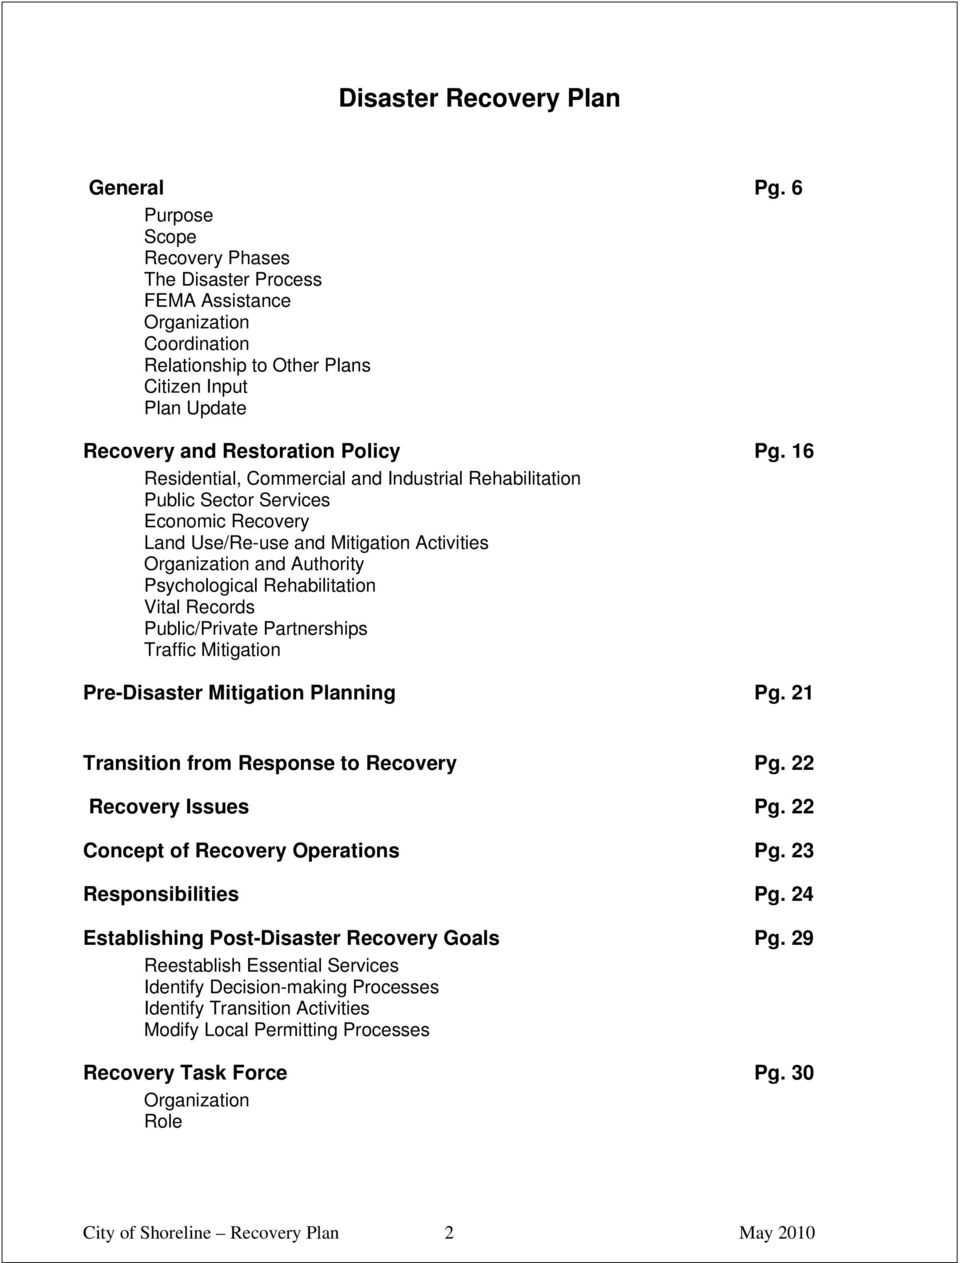 16 Residential, Commercial and Industrial Rehabilitation Public Sector Services Economic Recovery Land Use/Re-use and Mitigation Activities Organization and Authority Psychological Rehabilitation